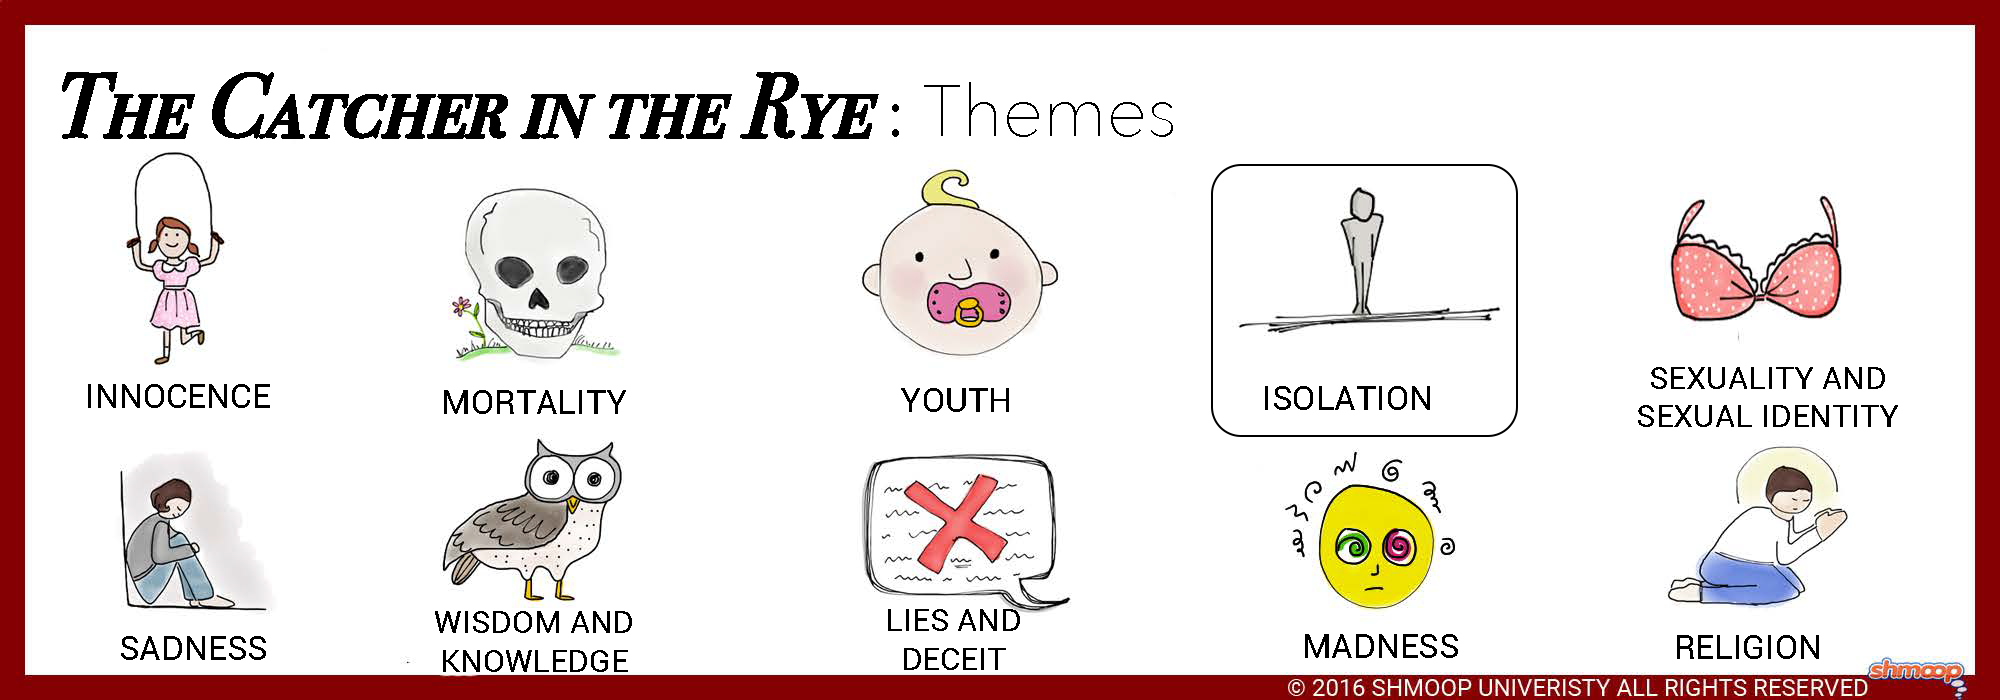 The catcher in the rye symbolism essay